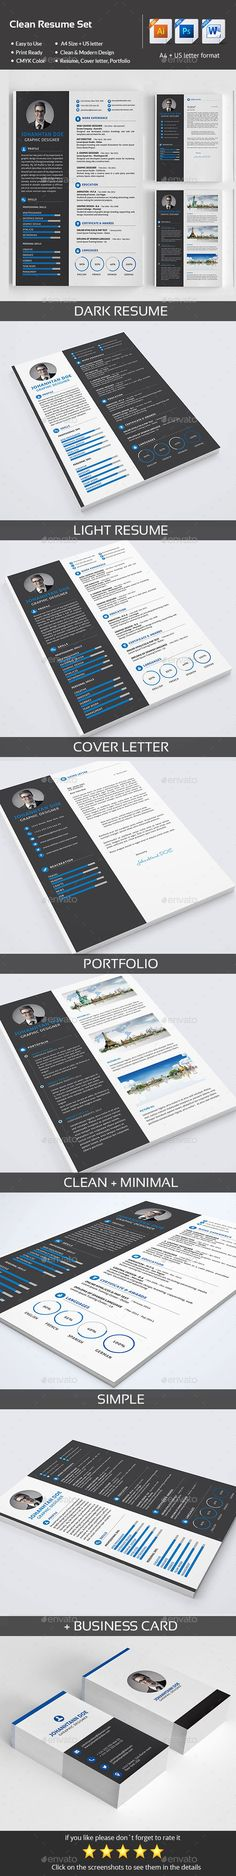 Resume By Themedevisers Simple  Clean Resume This Professional